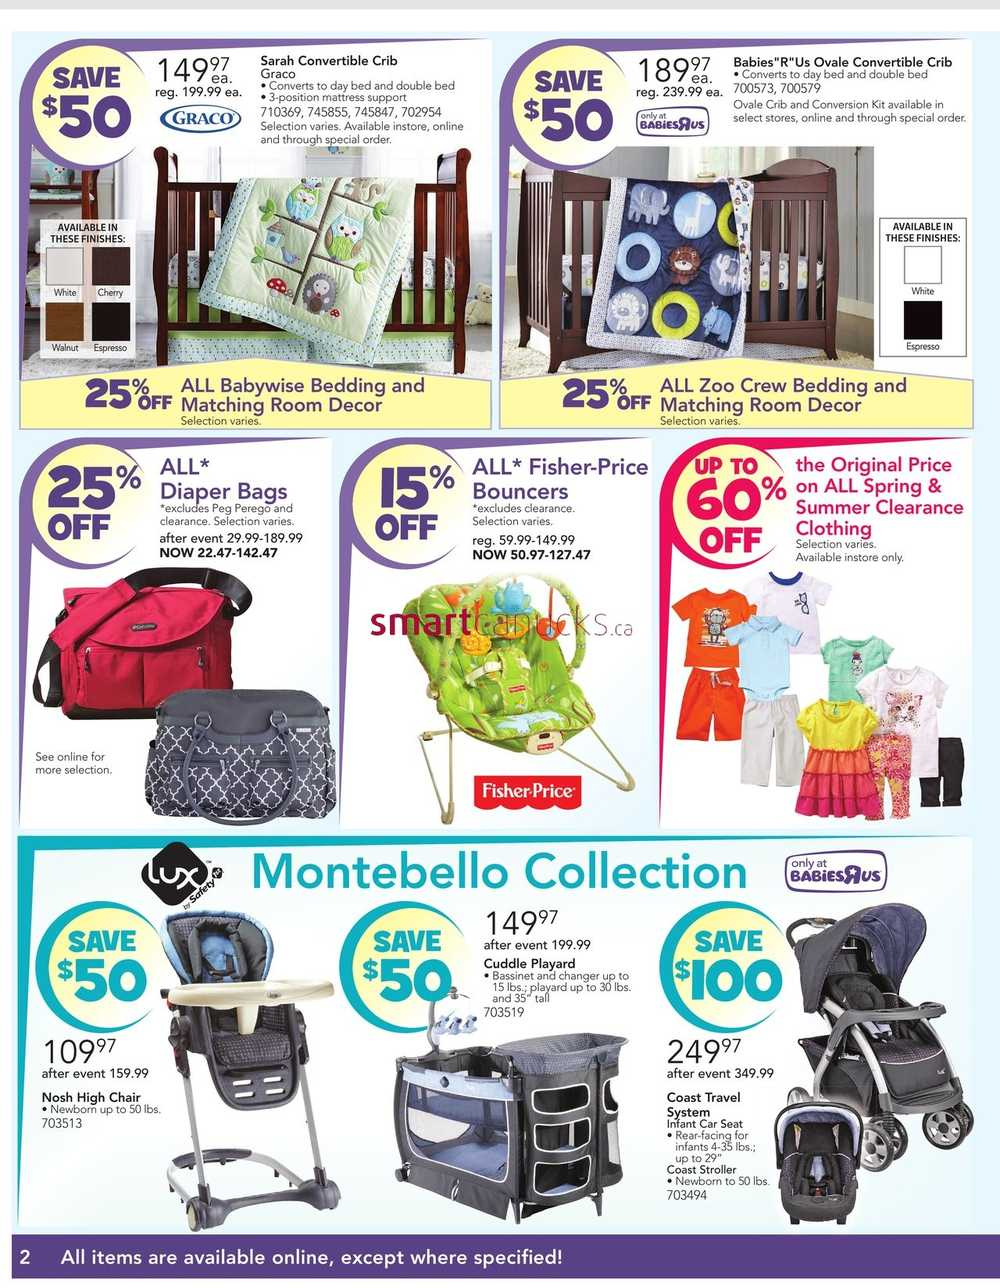 If you want the best specials and sales, then the Canada grocery & retail store flyers are great for saving money on food, appliances, electronics, household products, groceries, home decor, toys, clothing, footwear, furniture, tools, beauty products, and more.